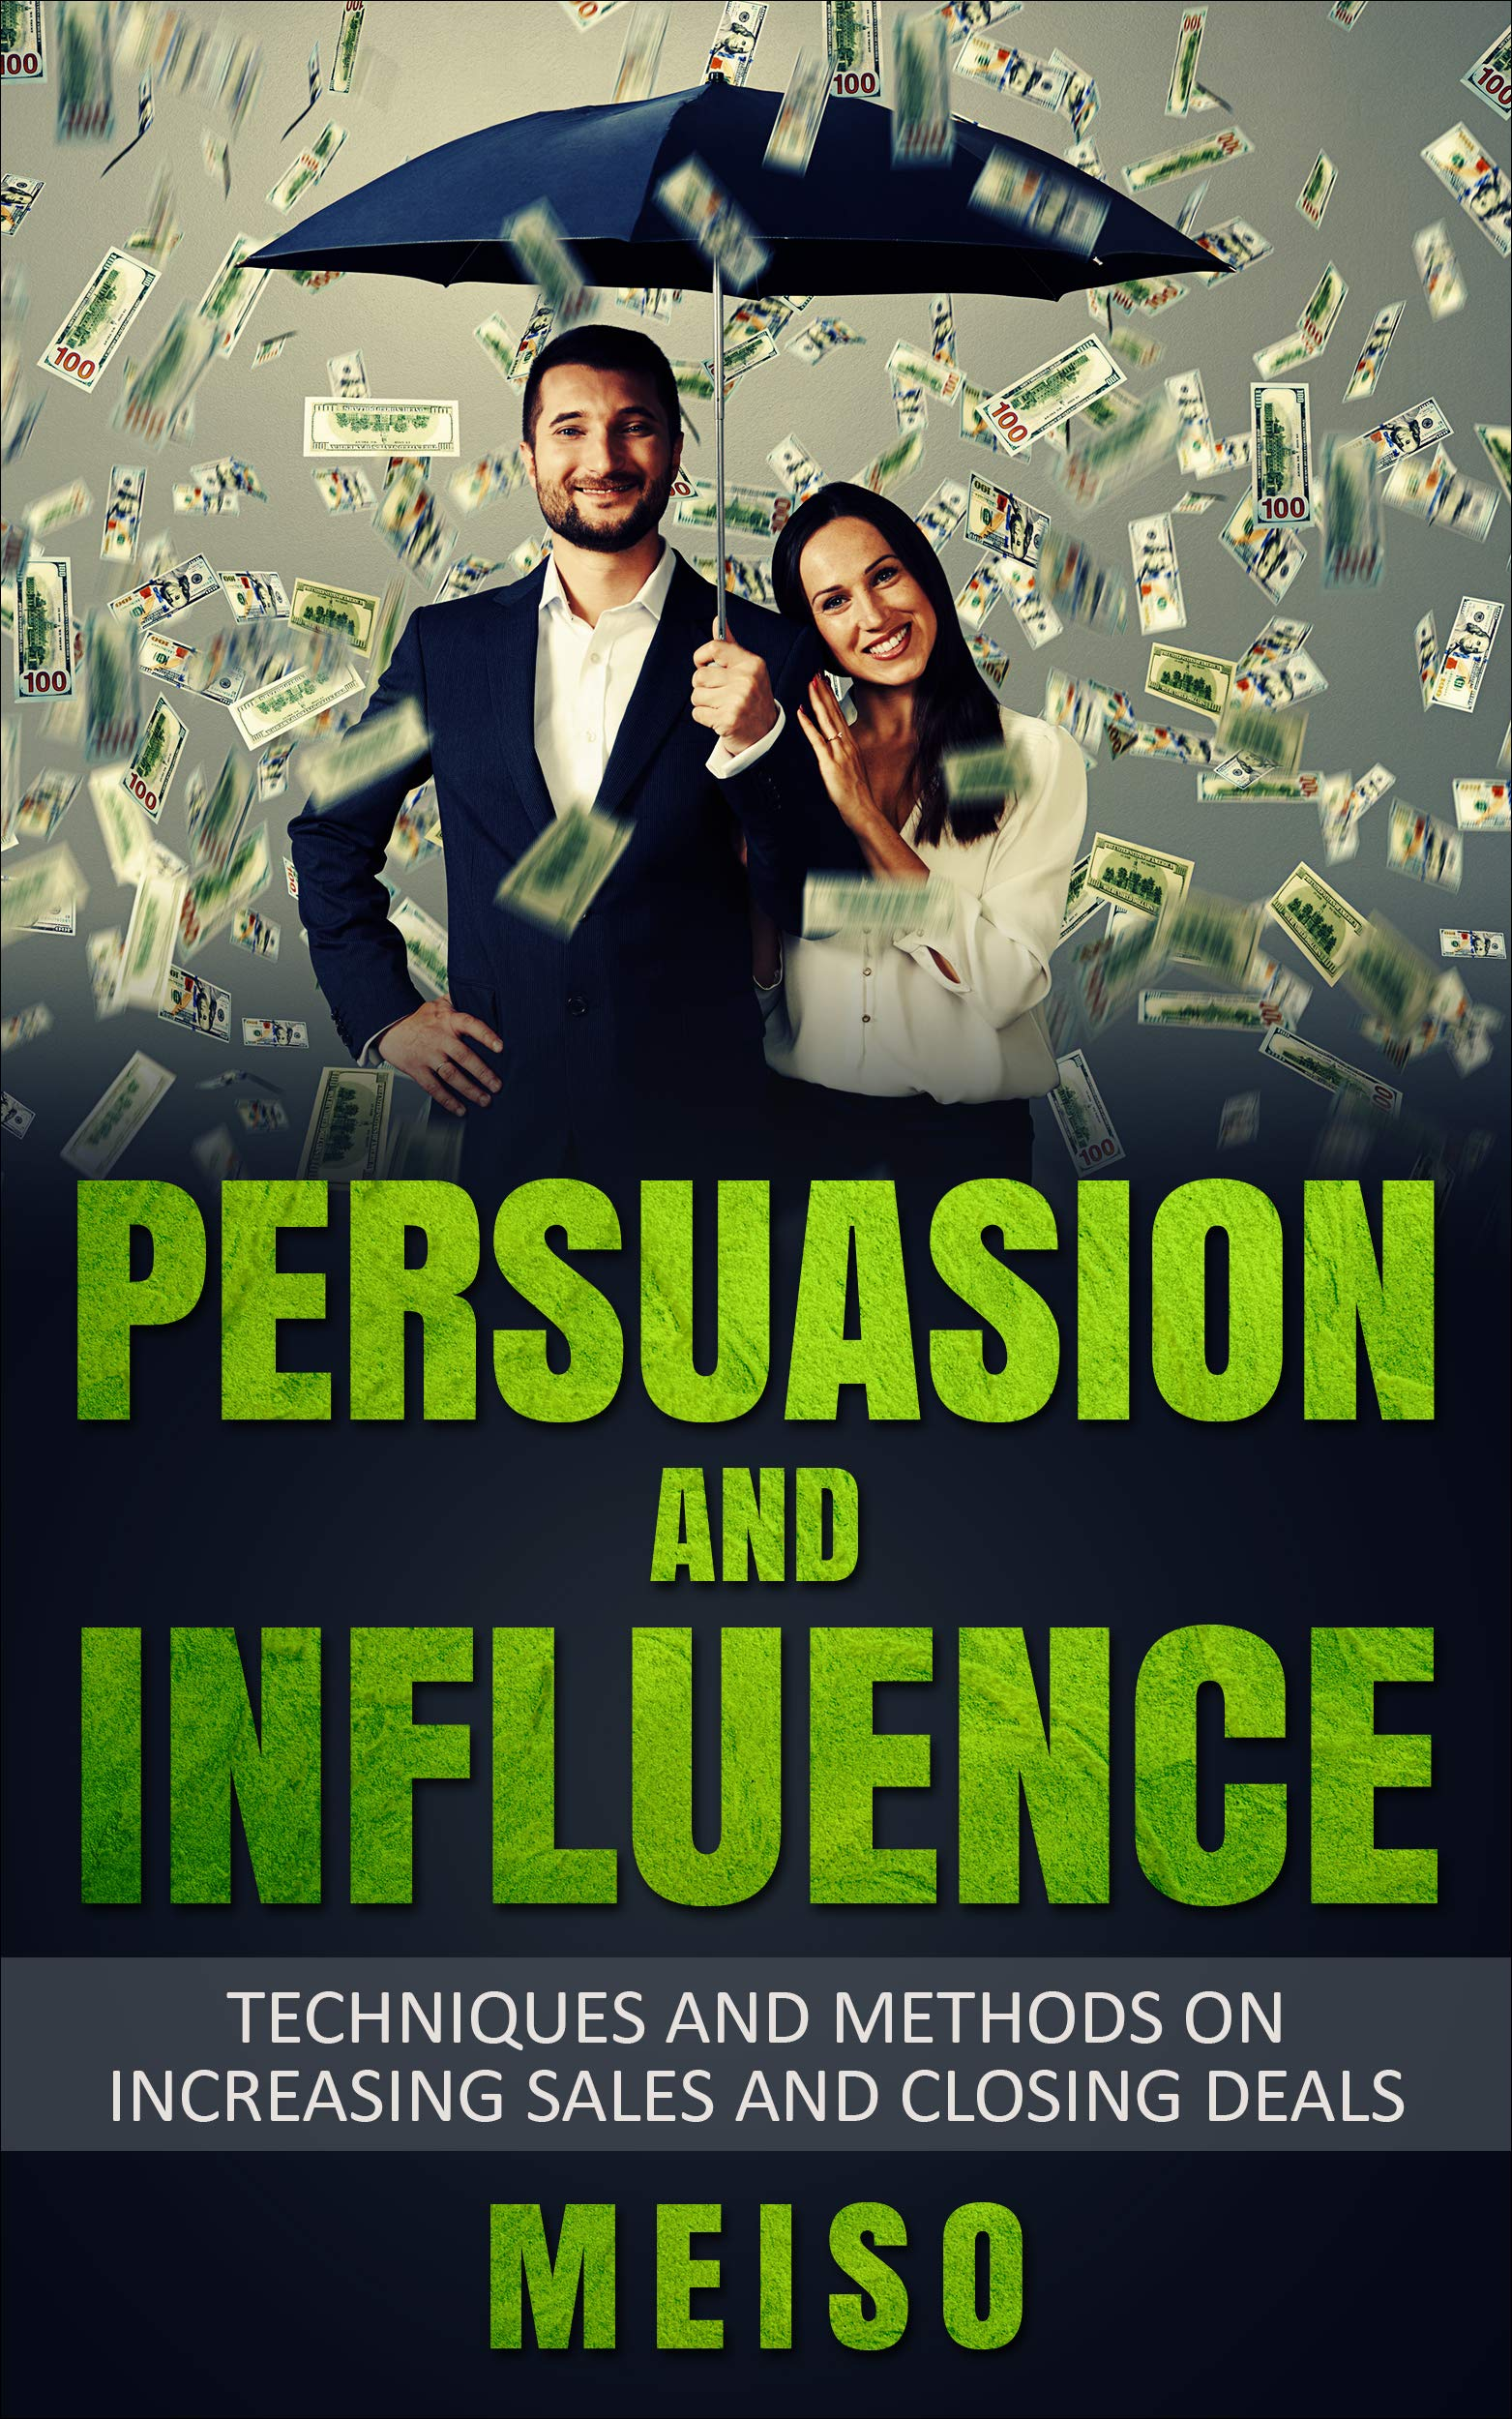 Persuasion and Influence: Techniques and Methods on Increasing Sales and Closing Deals